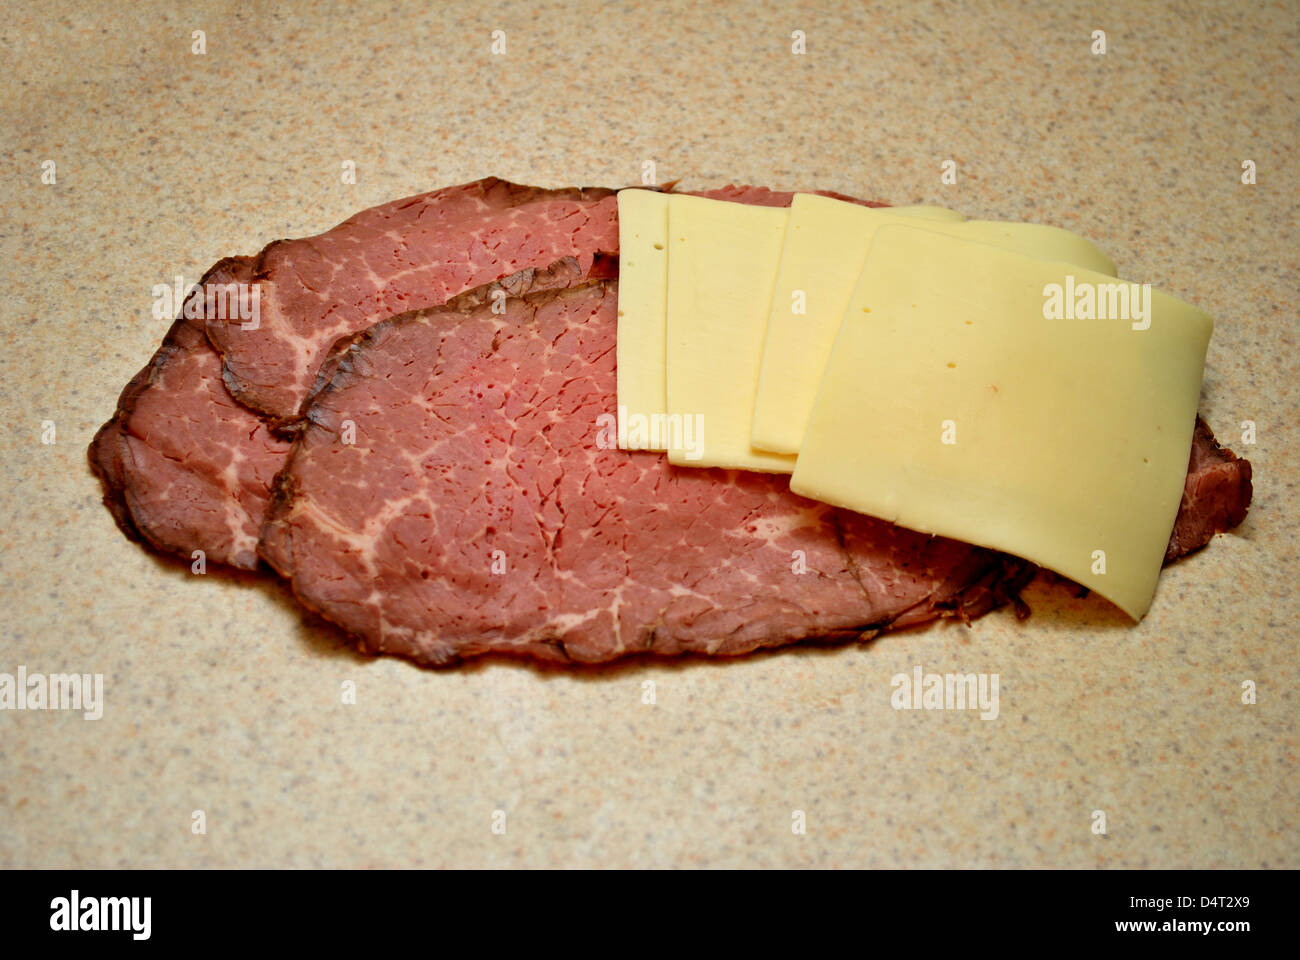 Cheese and Meat Slices - Stock Image